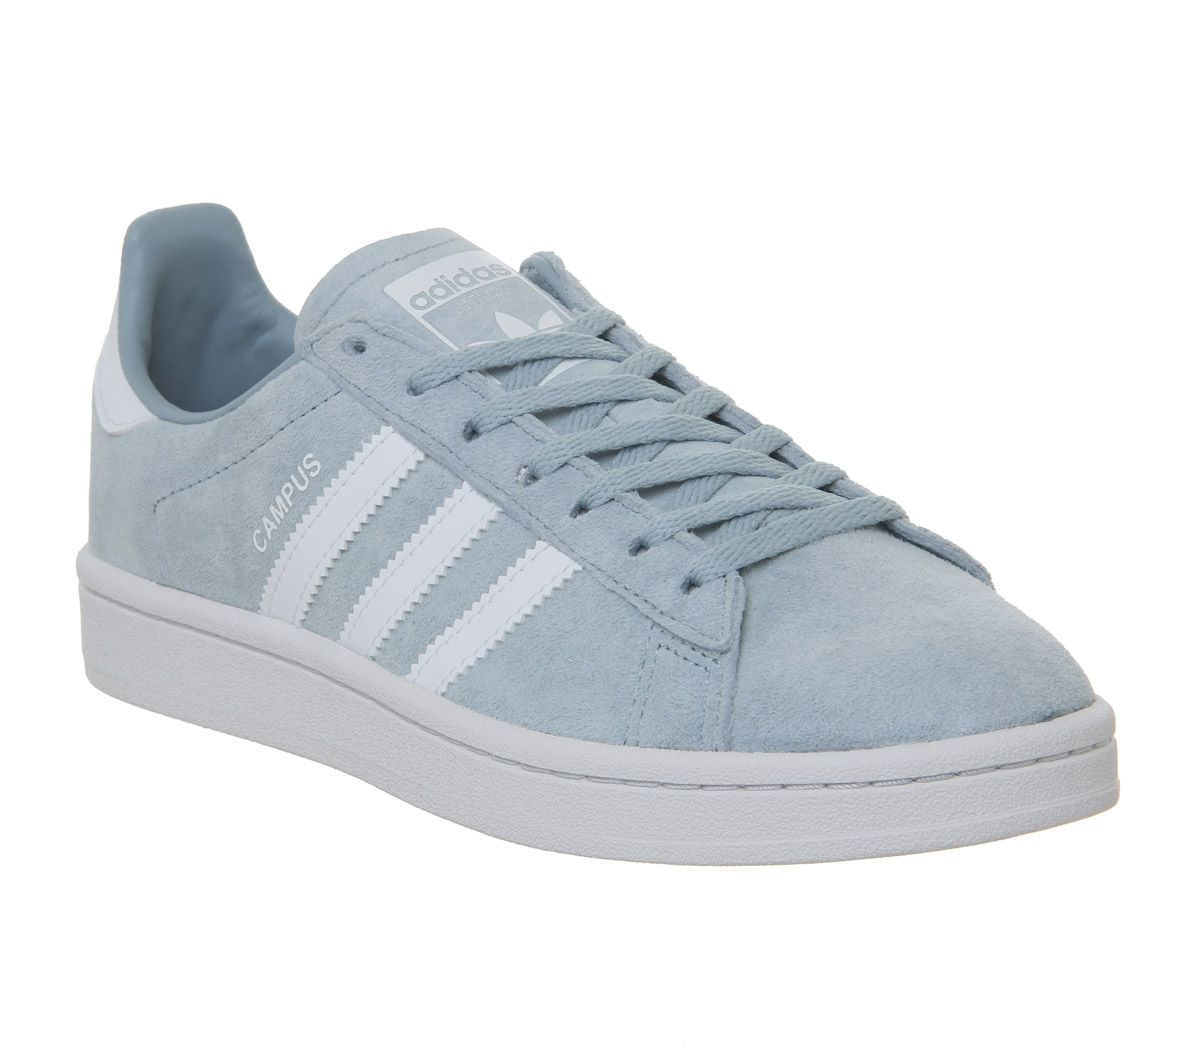 new arrival 08109 3bb02 adidas Campus Trainers Ash Grey White - Hers trainers